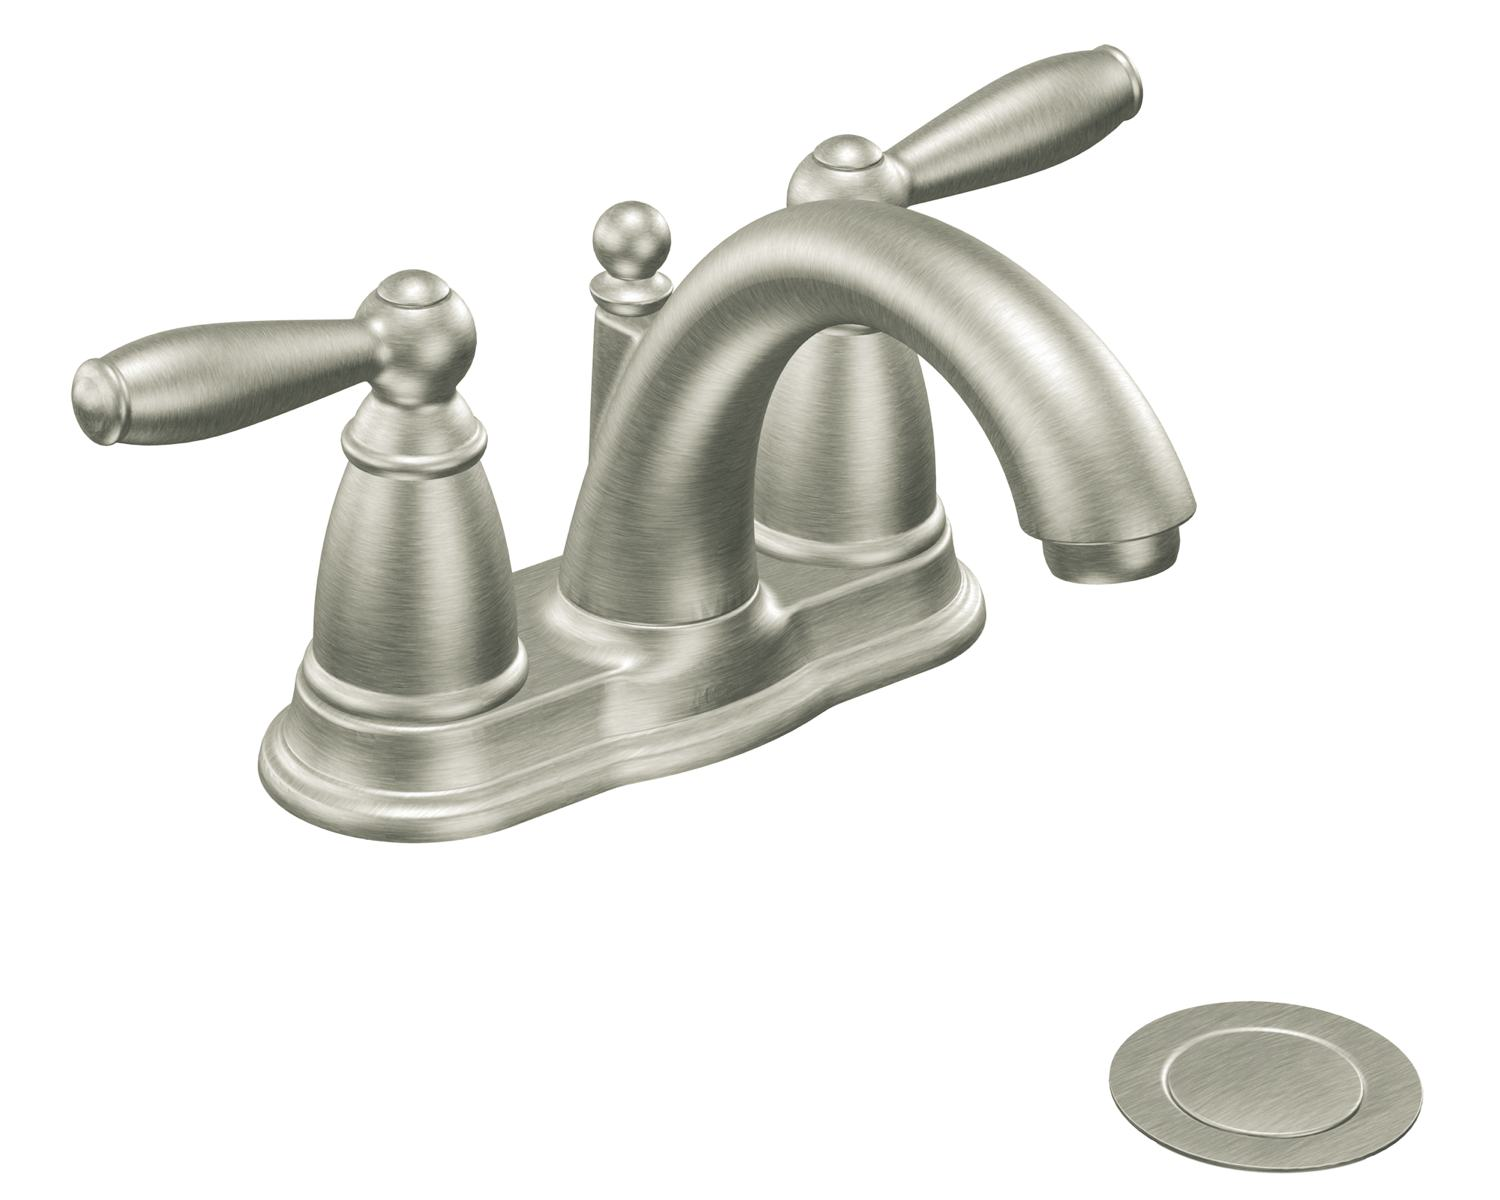 Moen 6610BN Brantford Two-Handle Low Arc Bathroom Faucet with ...